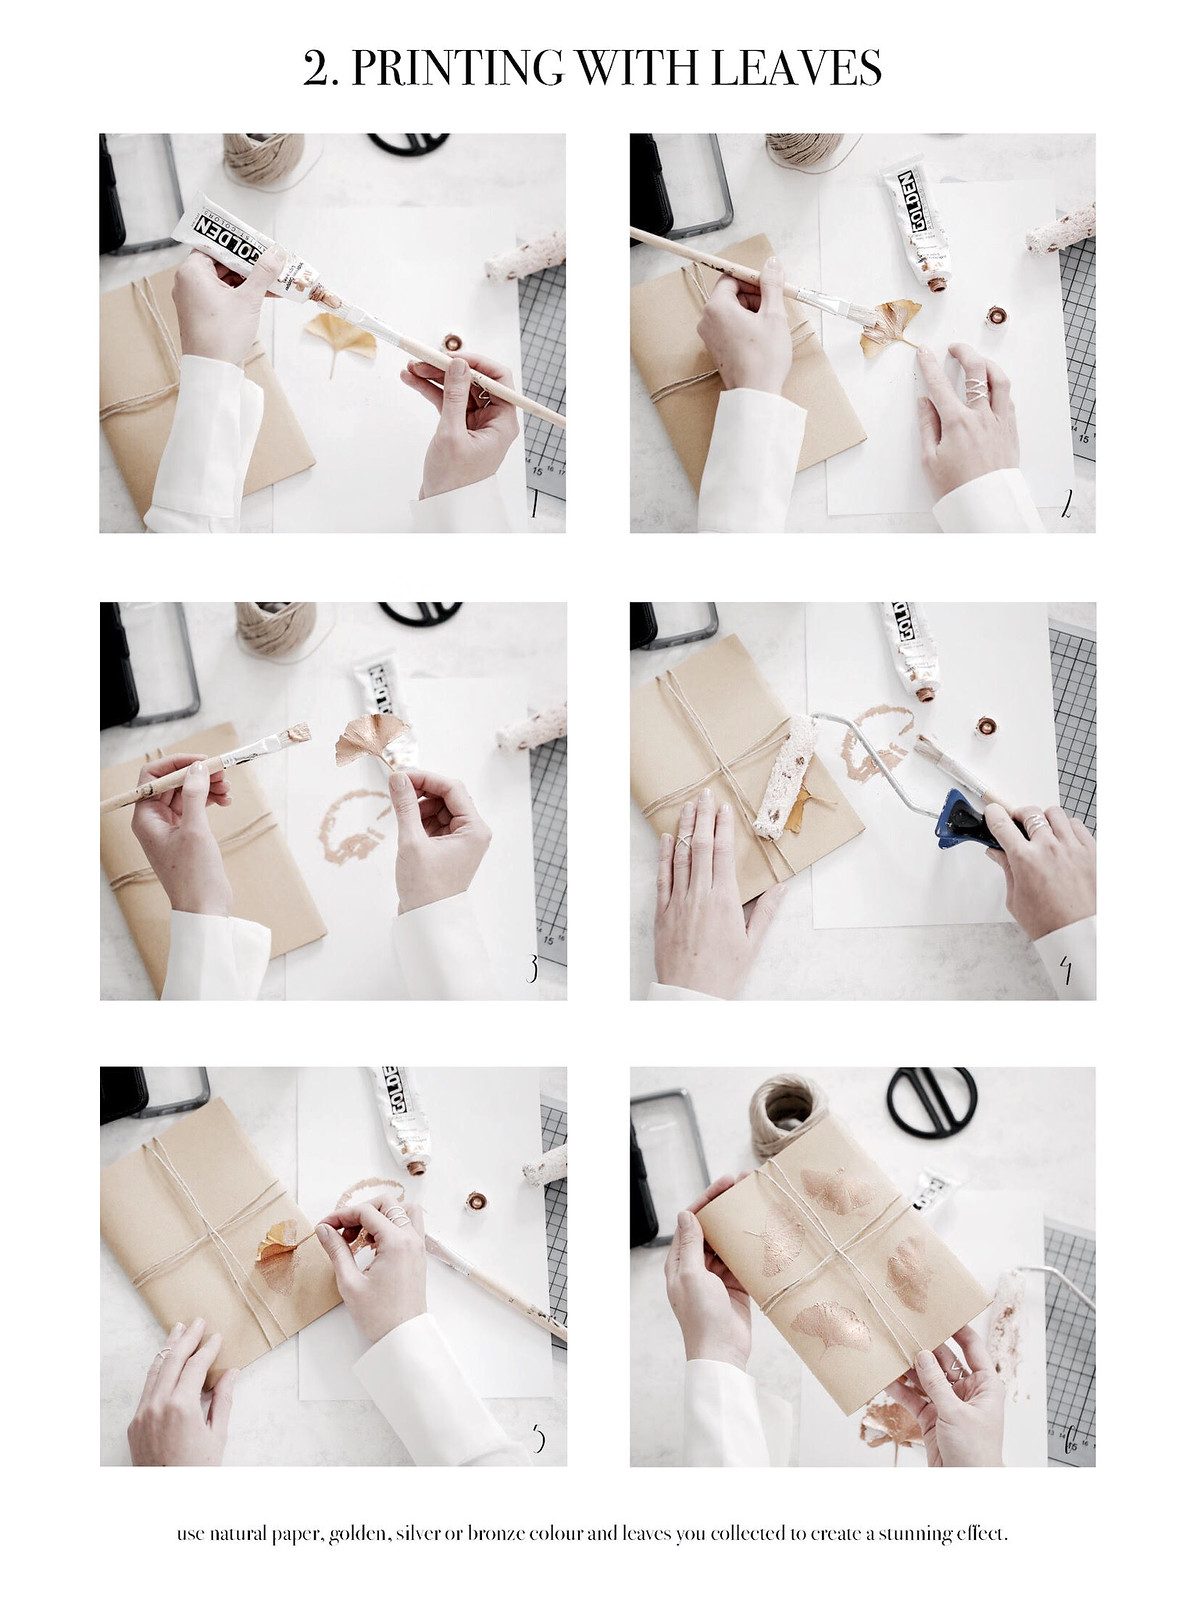 OtterBox ChristmasCovered collaboration DIY christmas present wrapping natural materials minimal nordic scandi style chic home decor do it yourself lifestyle blogger cats & dogs lifestyleblog ricarda schernus how to tutorial 2